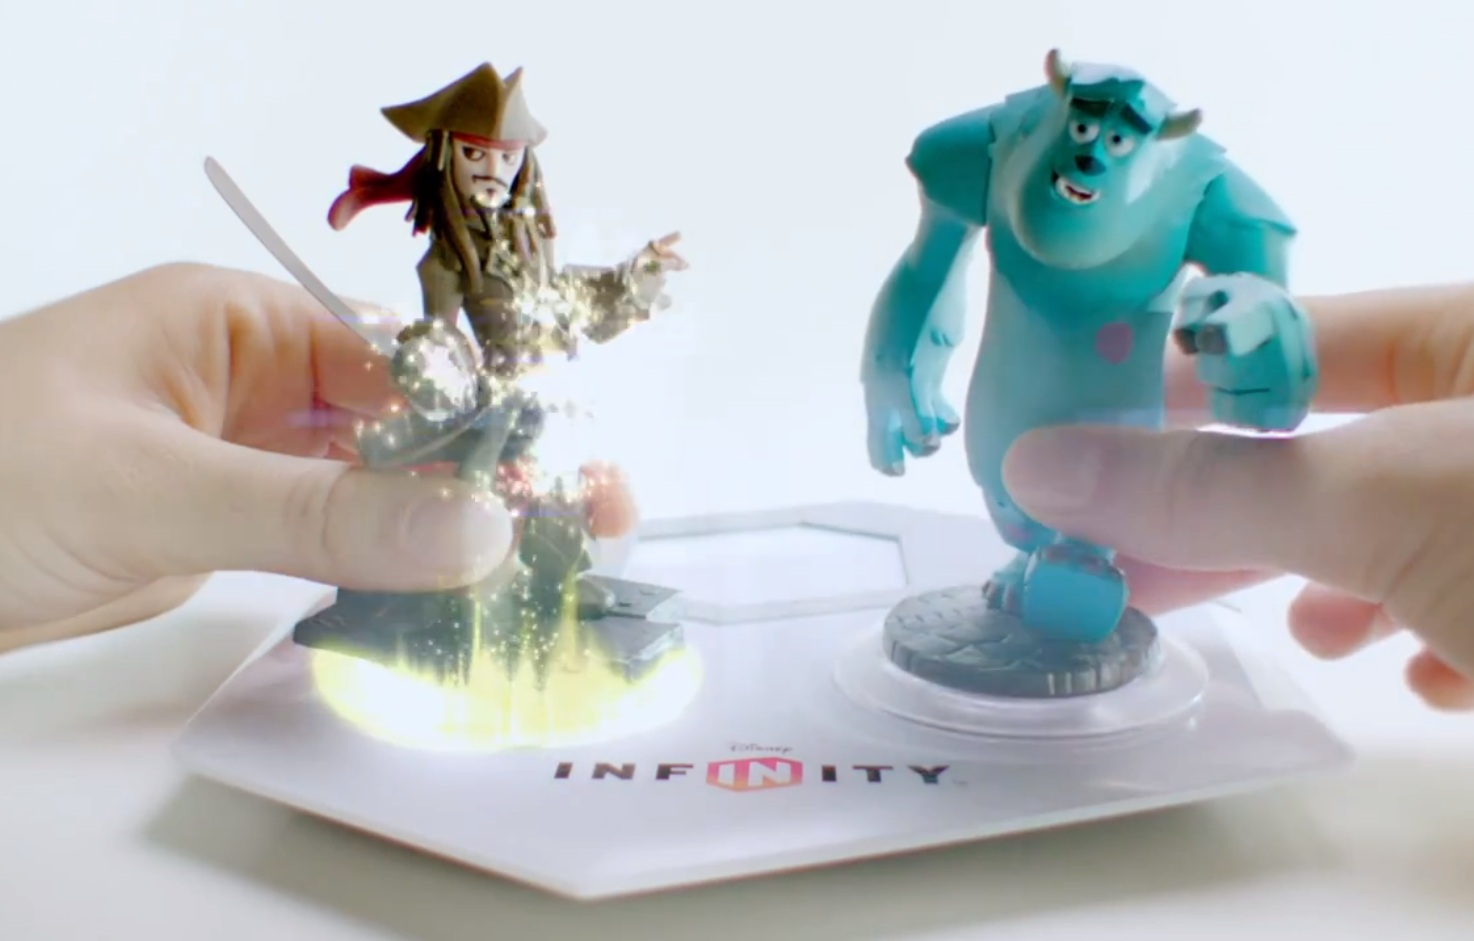 disney Infinity is a waste of money